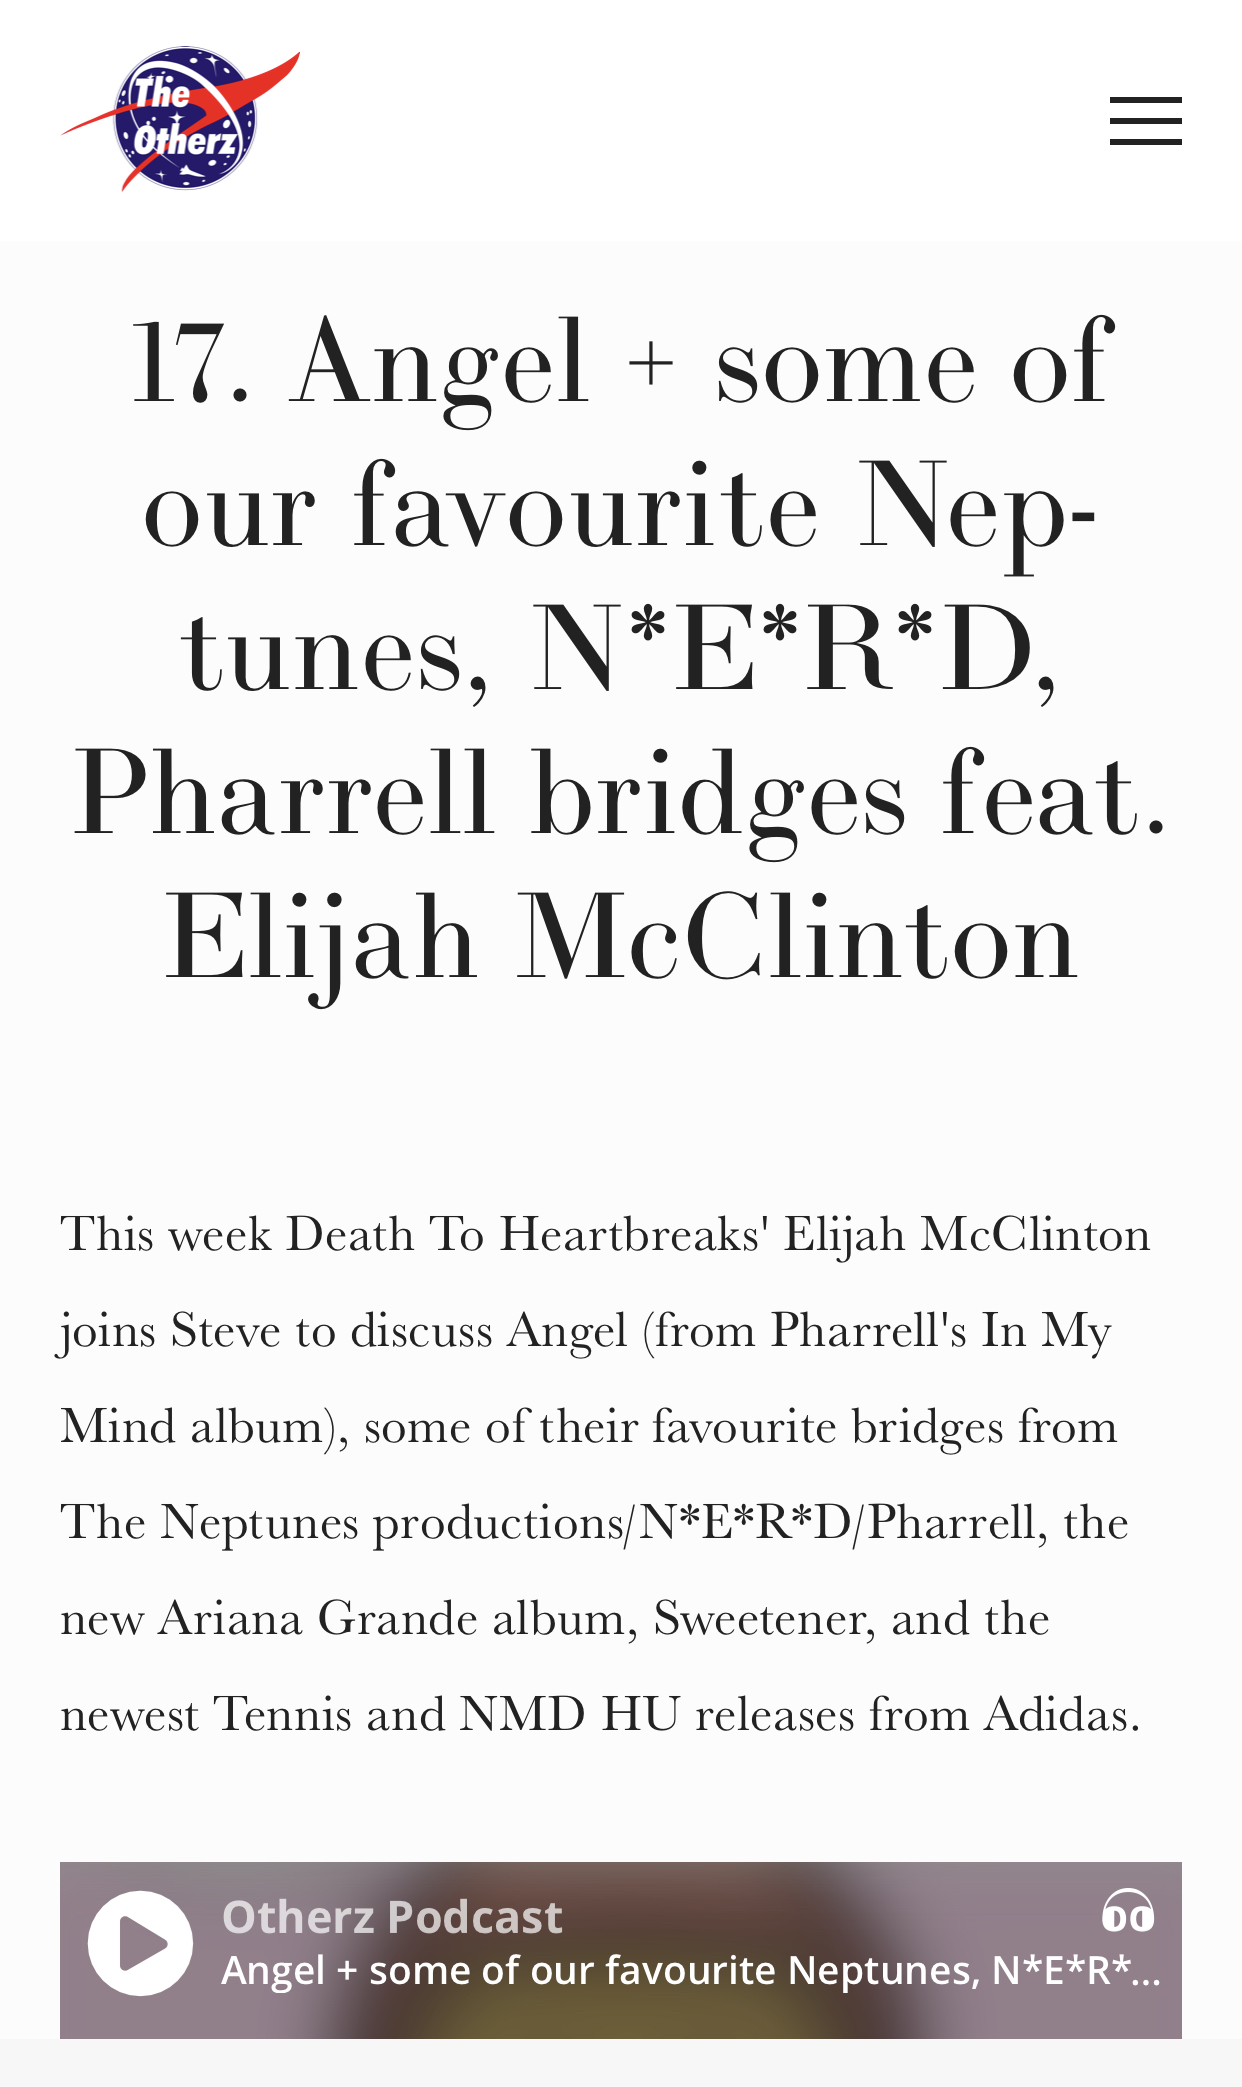 The Otherz Podcast with Steve Penny - Was a pleasure to be featured on the Otherz Podcast with Steve Penny discussing our favorite Neptune and Pharrell bridges.